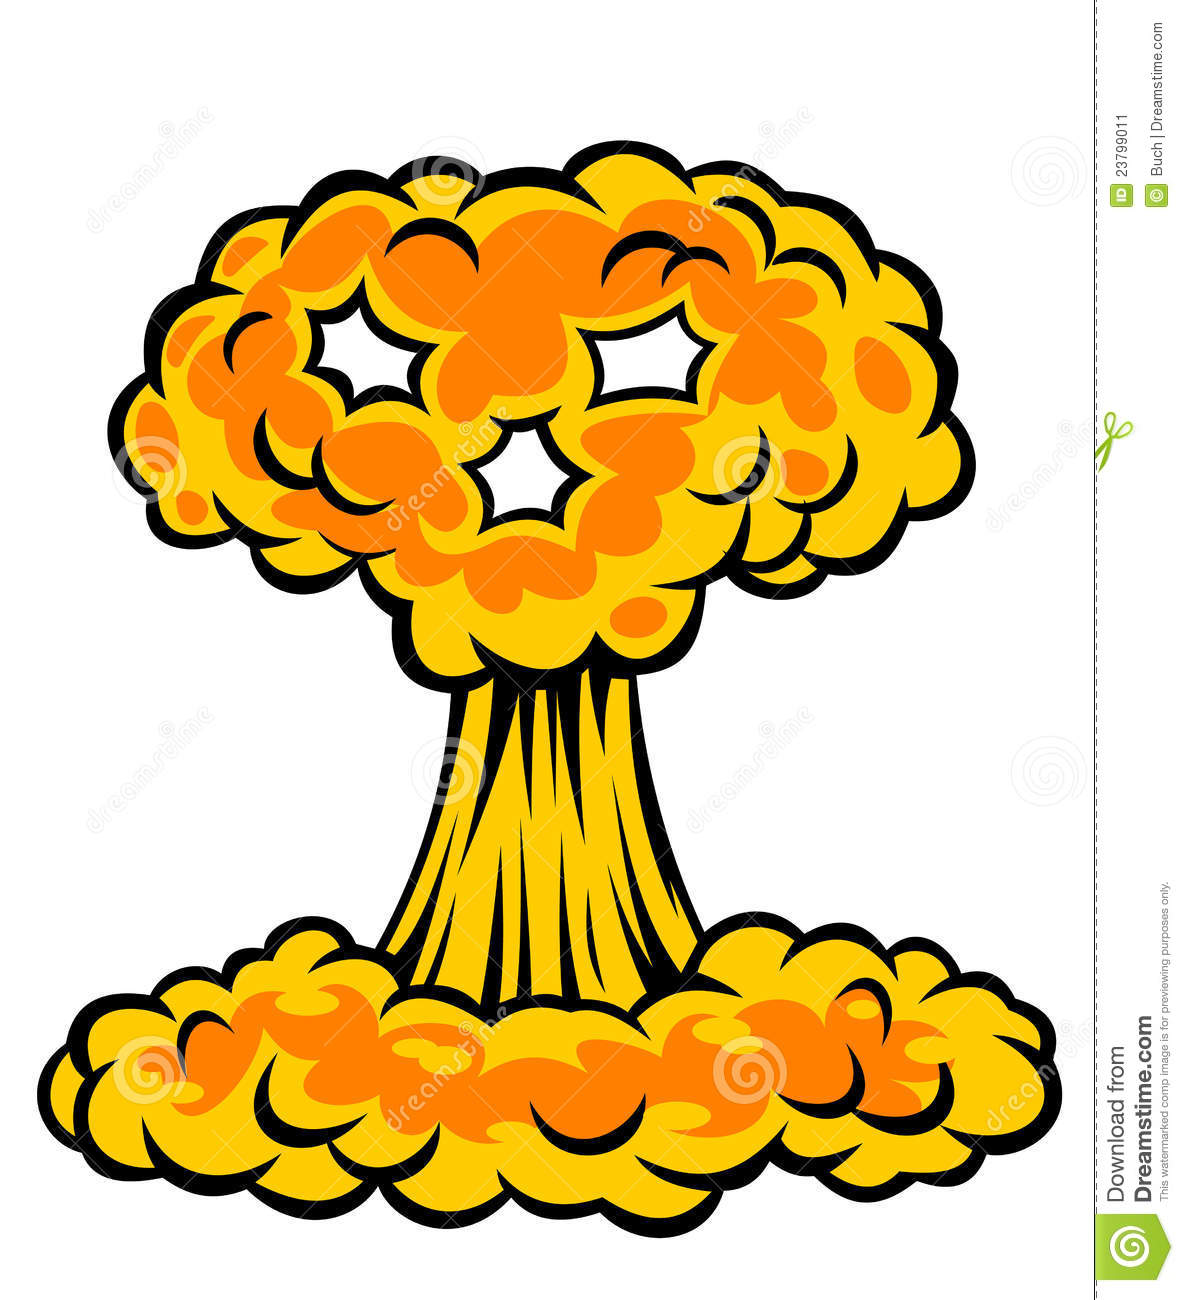 Nuclear Bomb Explosion Clipart.